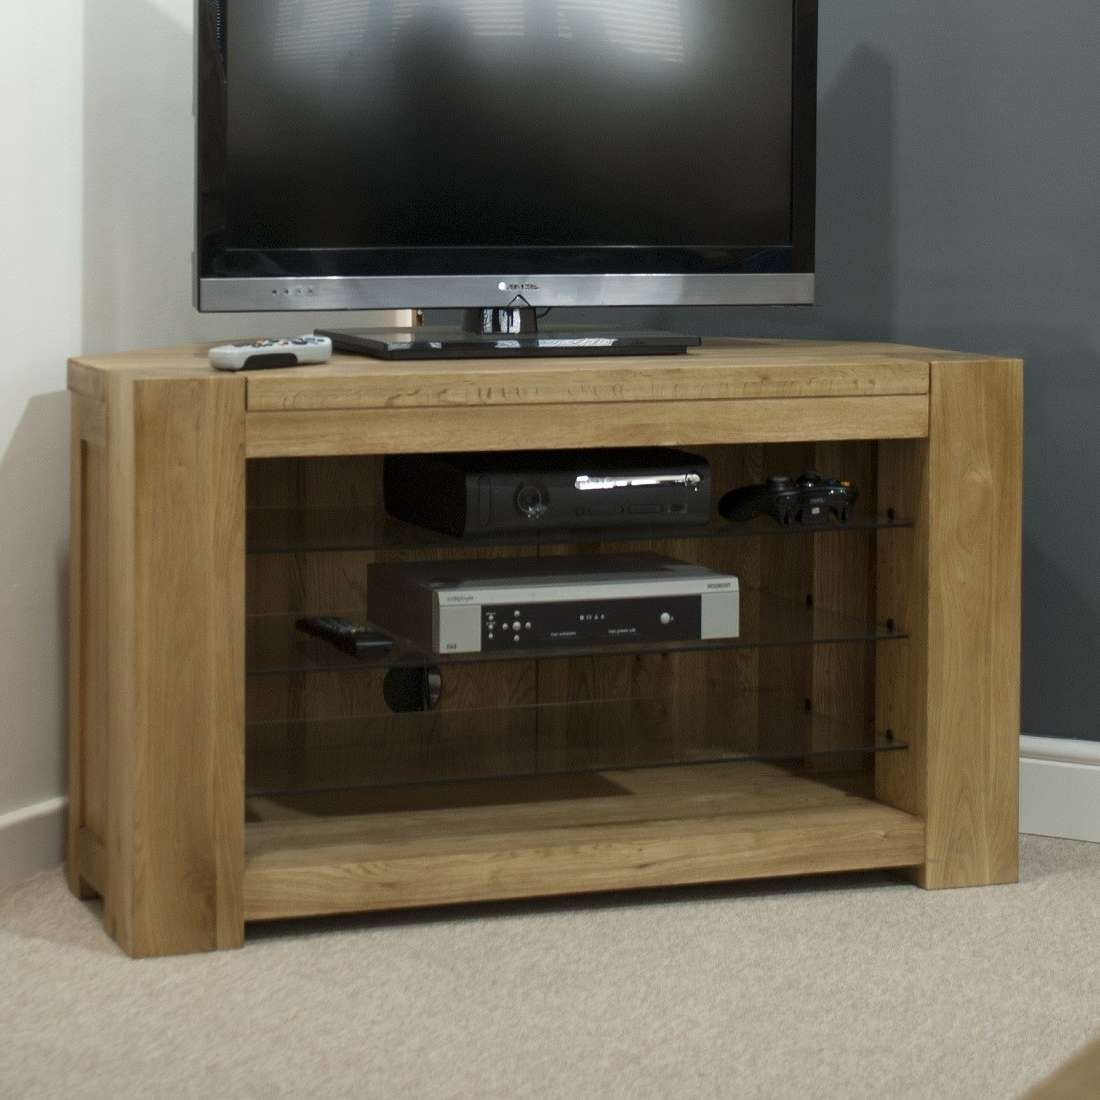 Trend Solid Oak Corner Tv Unit | Oak Furniture Uk Intended For Oak Tv Cabinets For Flat Screens (View 17 of 20)